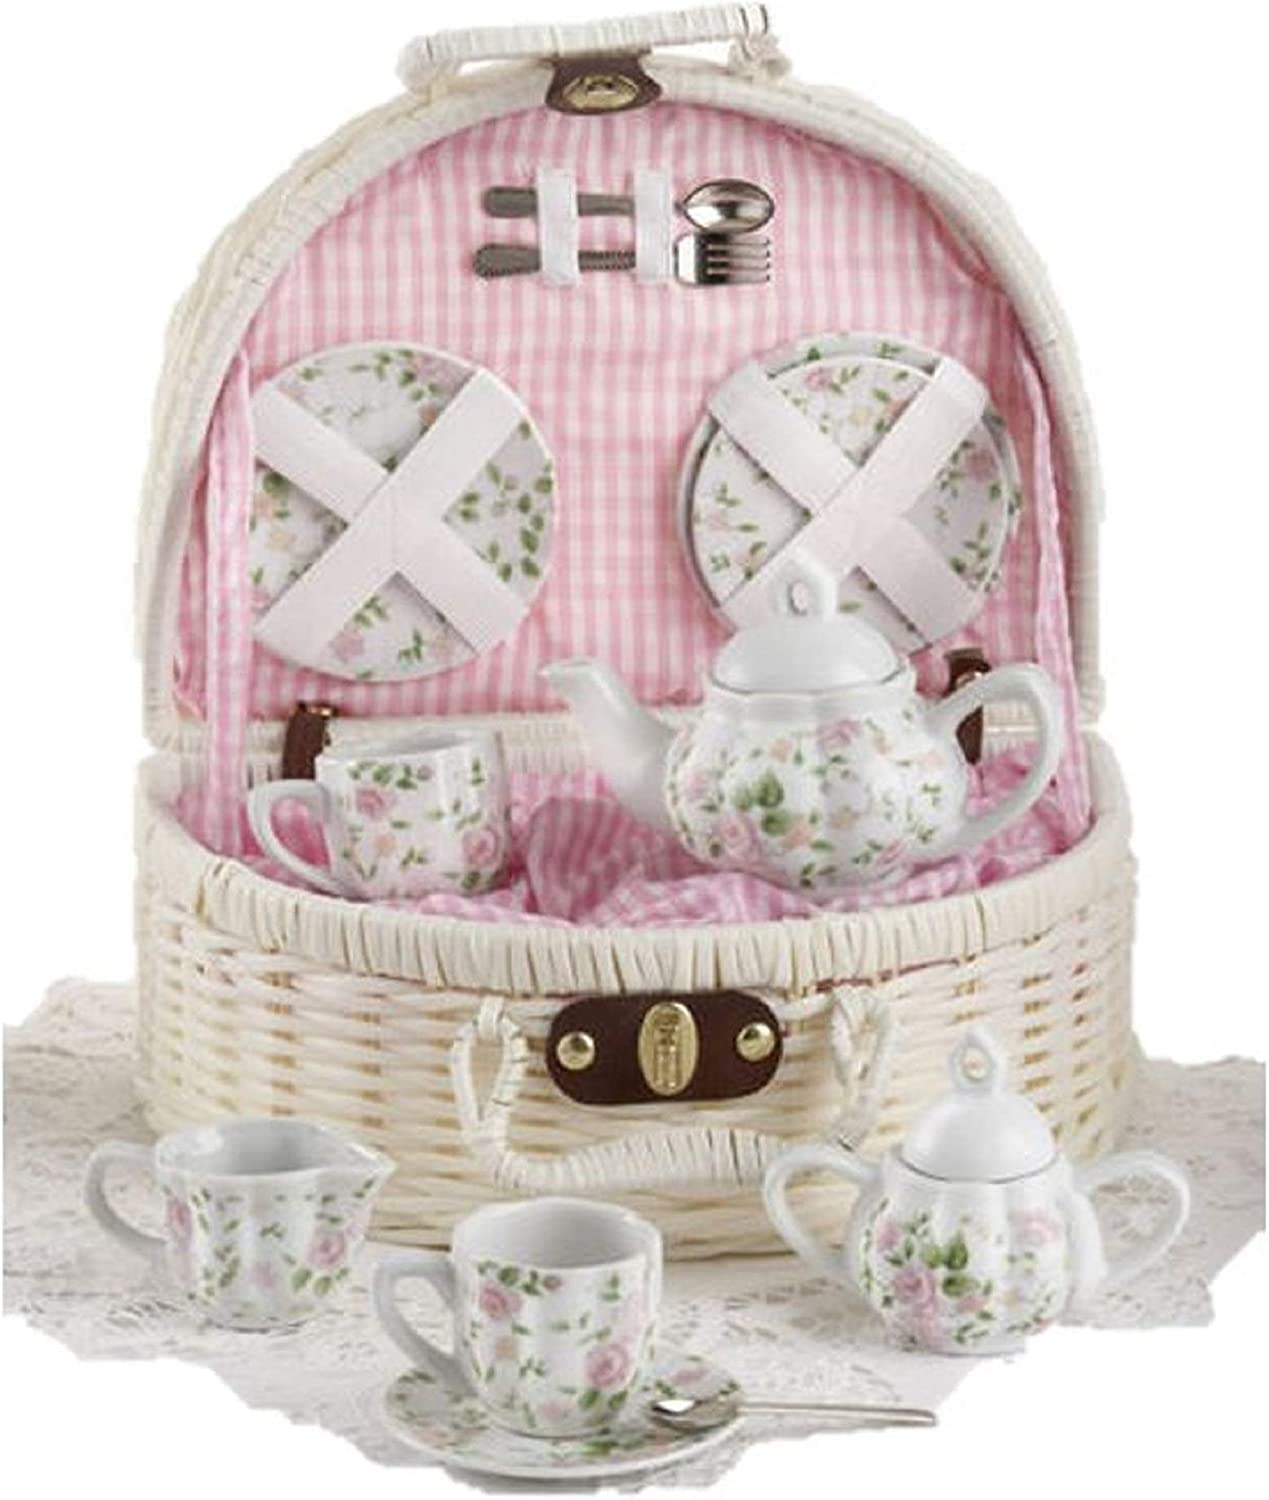 Porcelain Tea Set in Basket Pink Bella Ballerina